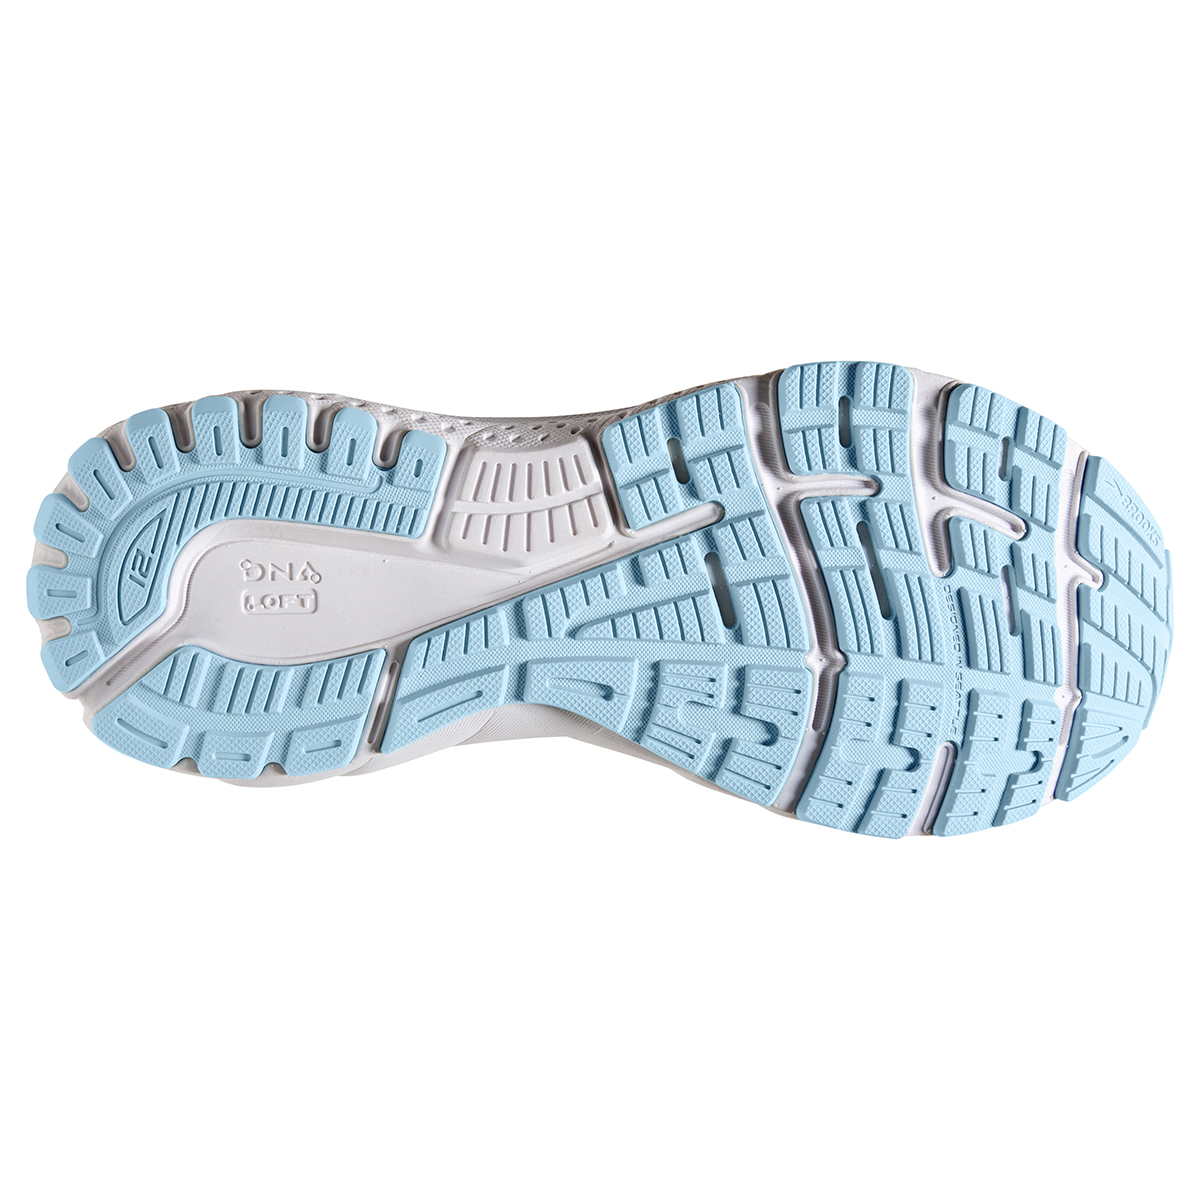 Women's Brooks Adrenaline GTS 21 Running Shoe - Color: Oyster/Alloy/Light Blue - Size: 5 - Width: Wide, Oyster/Alloy/Light Blue, large, image 6